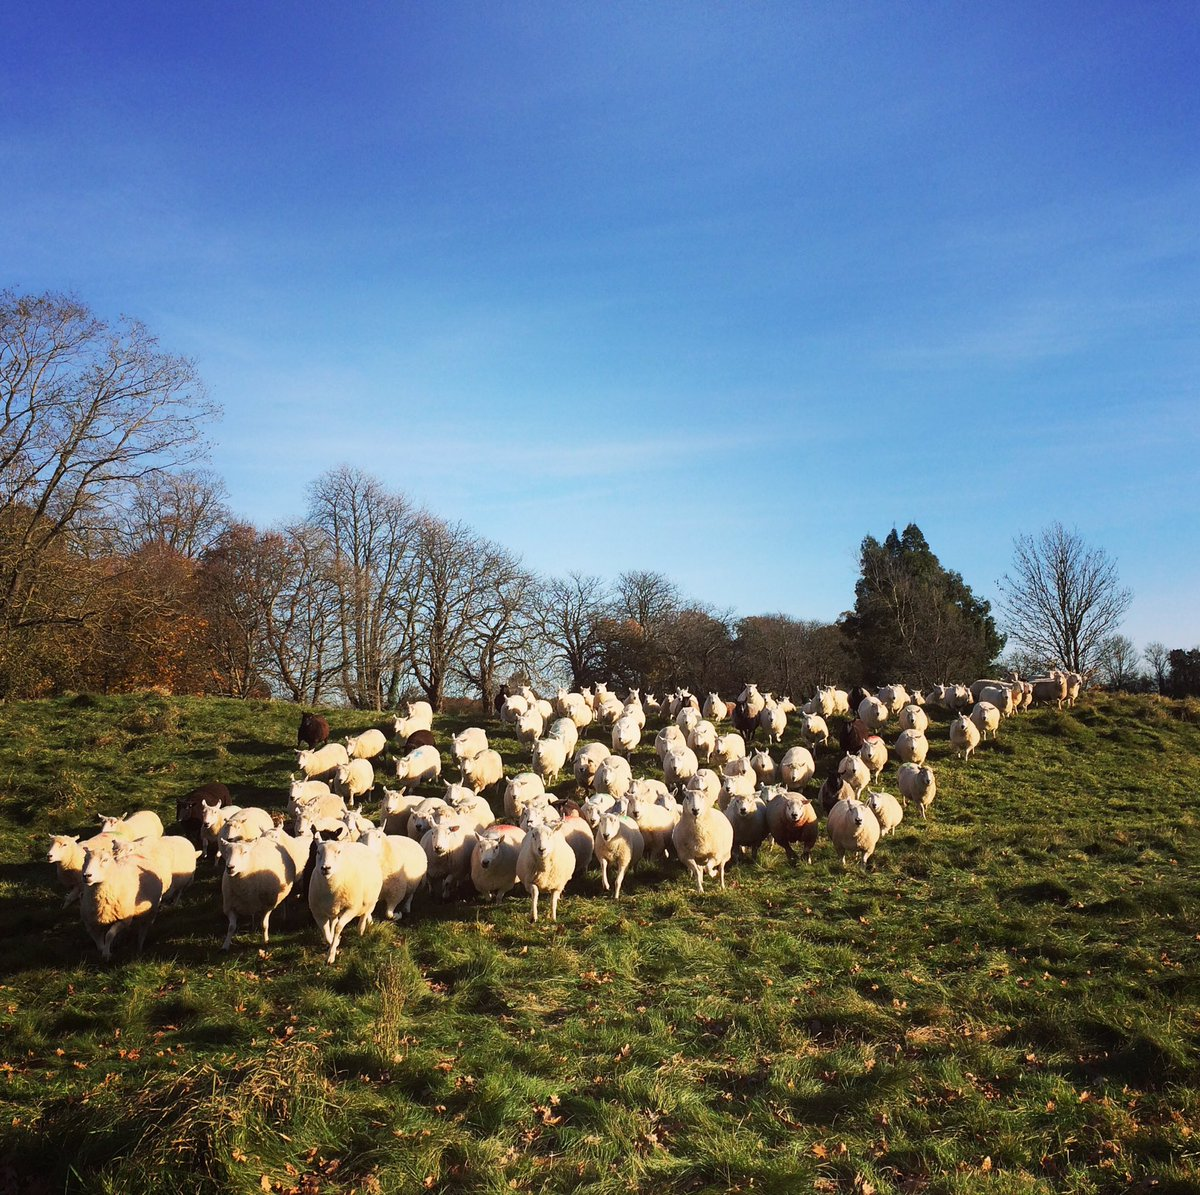 Move time for the #highlanders and #Cheviots #stampede #sheep365 #freshgrass<br>http://pic.twitter.com/3PUXScAYqh